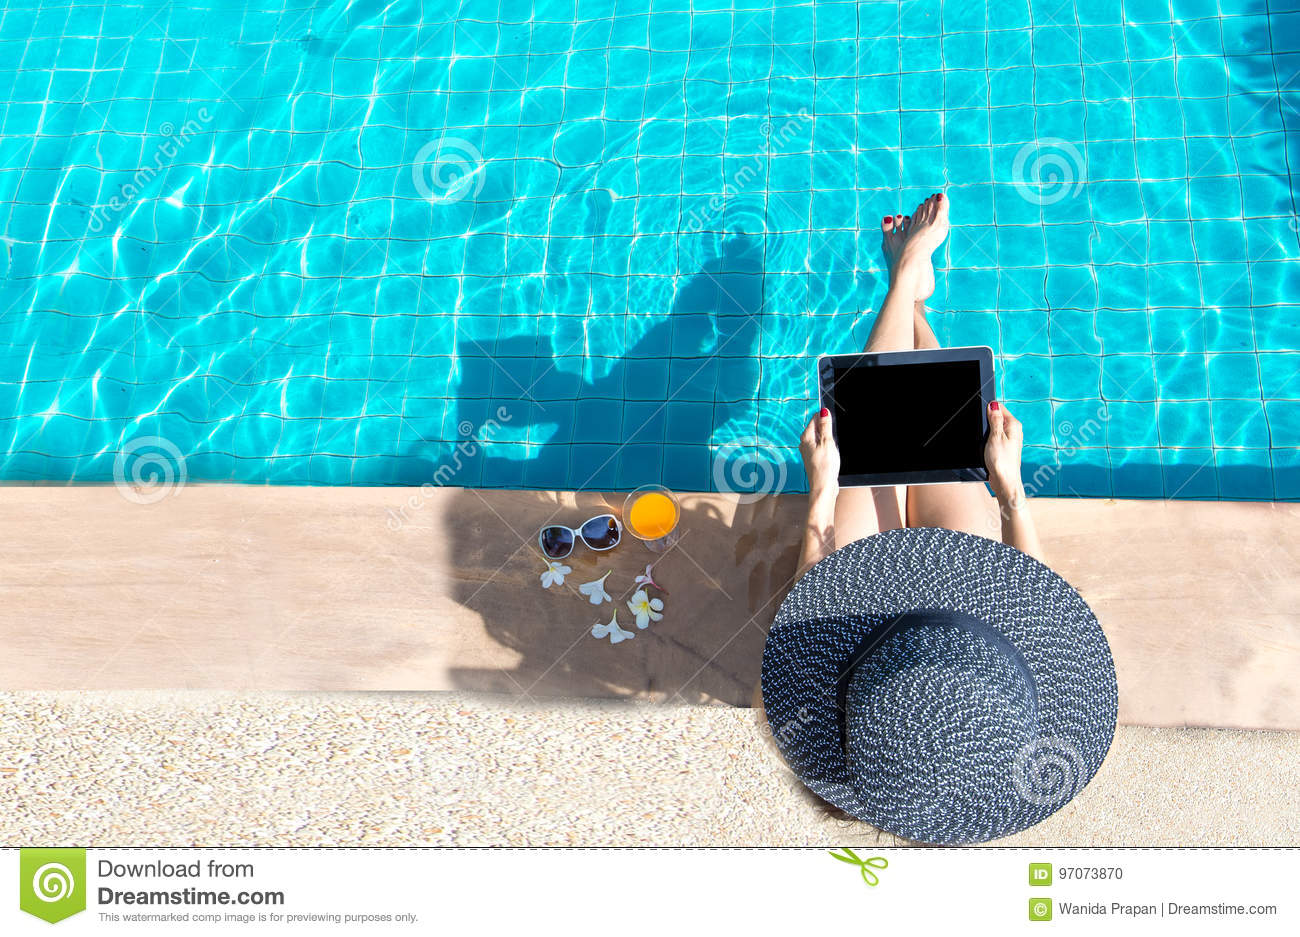 Women lifestyle play laptop relaxing near luxury swimming pool sunbath, summer day at the beach resort in the hotel.